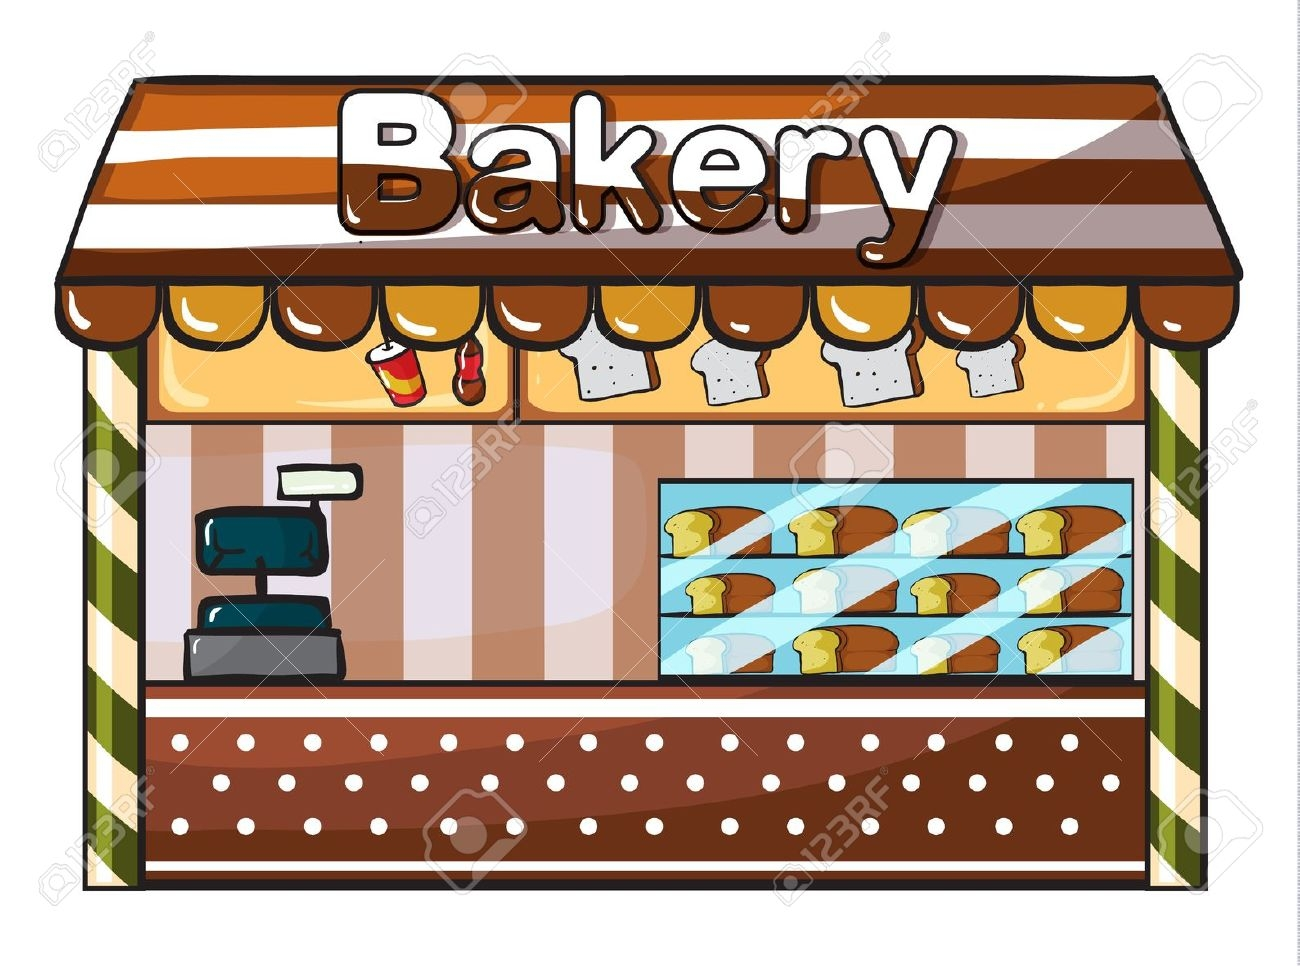 Cake Store Clipart : Bakery clipart - Clipground